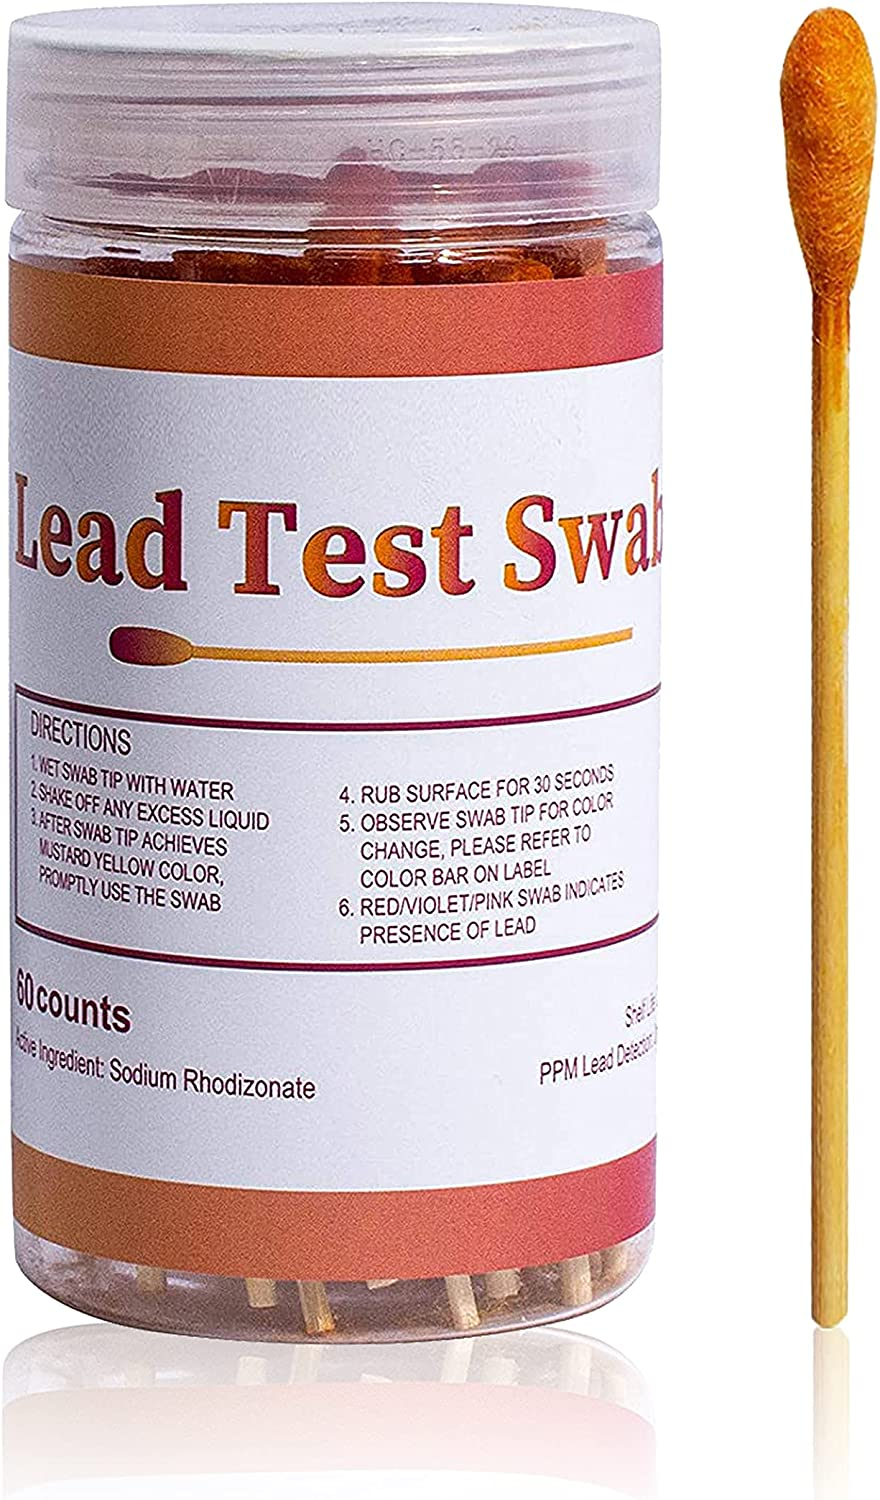 VANSFUL Lead Test Kit 60 Counts Testing Swabs Rapid Test, Results in 30 Seconds, Dip in Water to Use Lead Testing Kits for Home Use, Suitable for All Painted Surfaces,Ceramics, Dishes, Metal, Wood